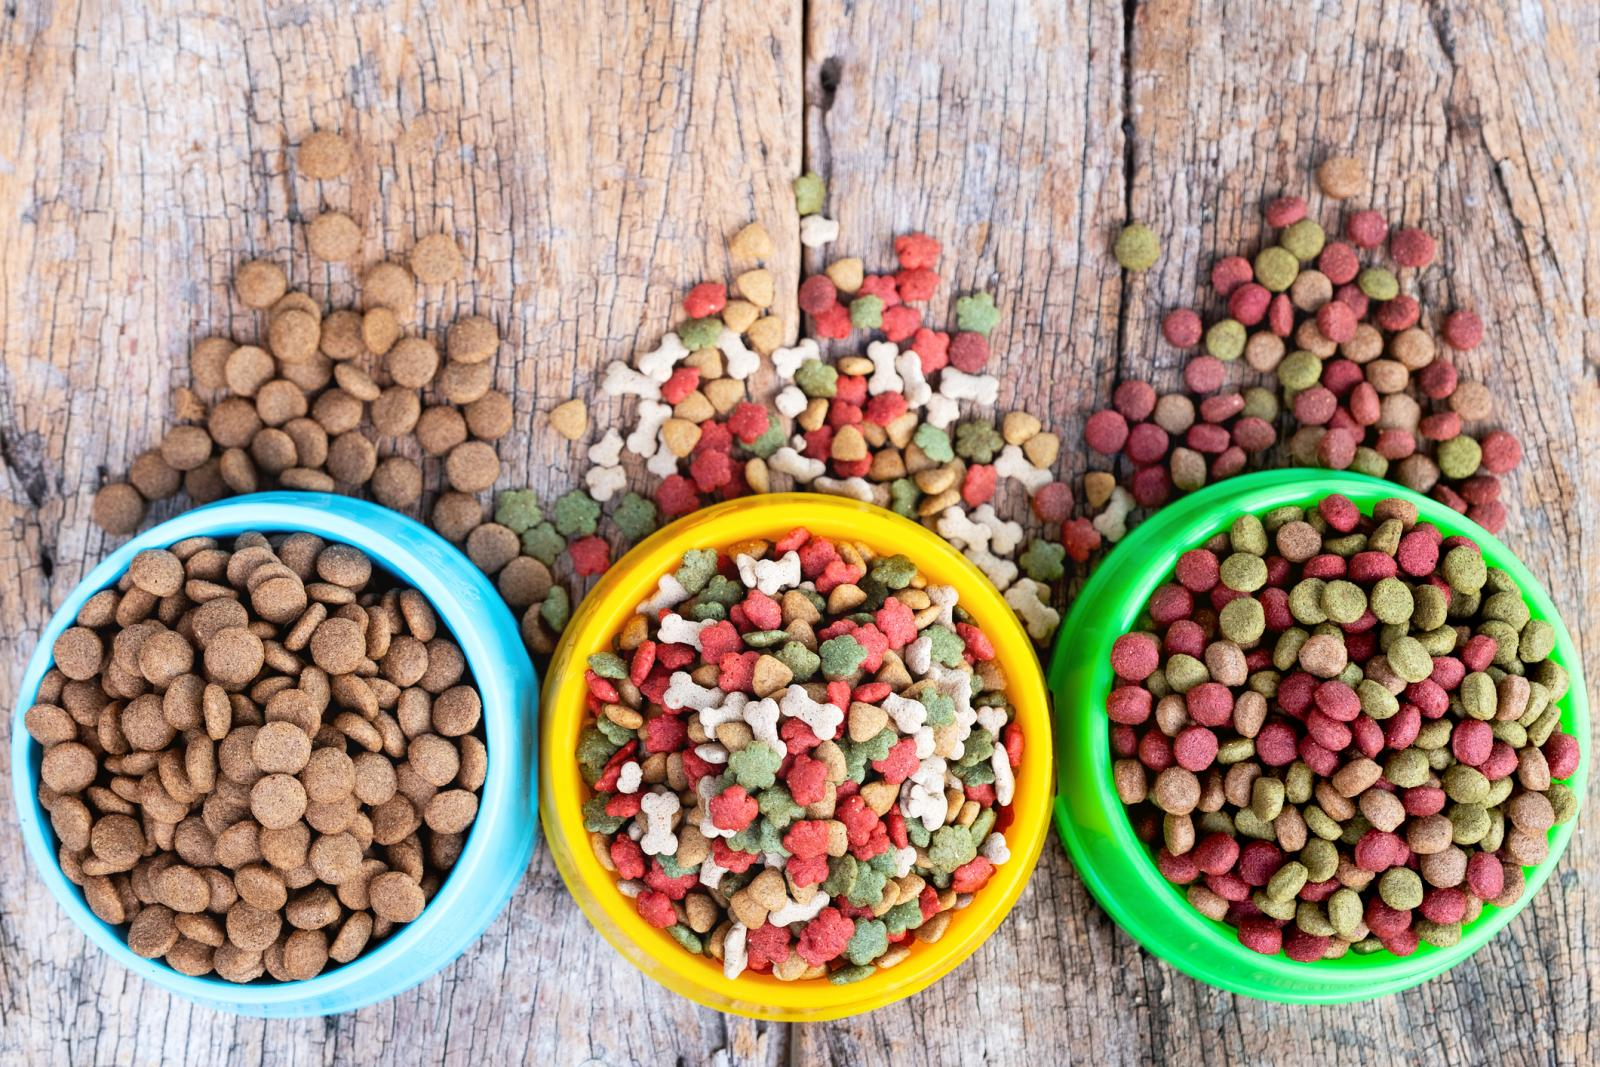 10 Best Dog Foods | LoveToKnow